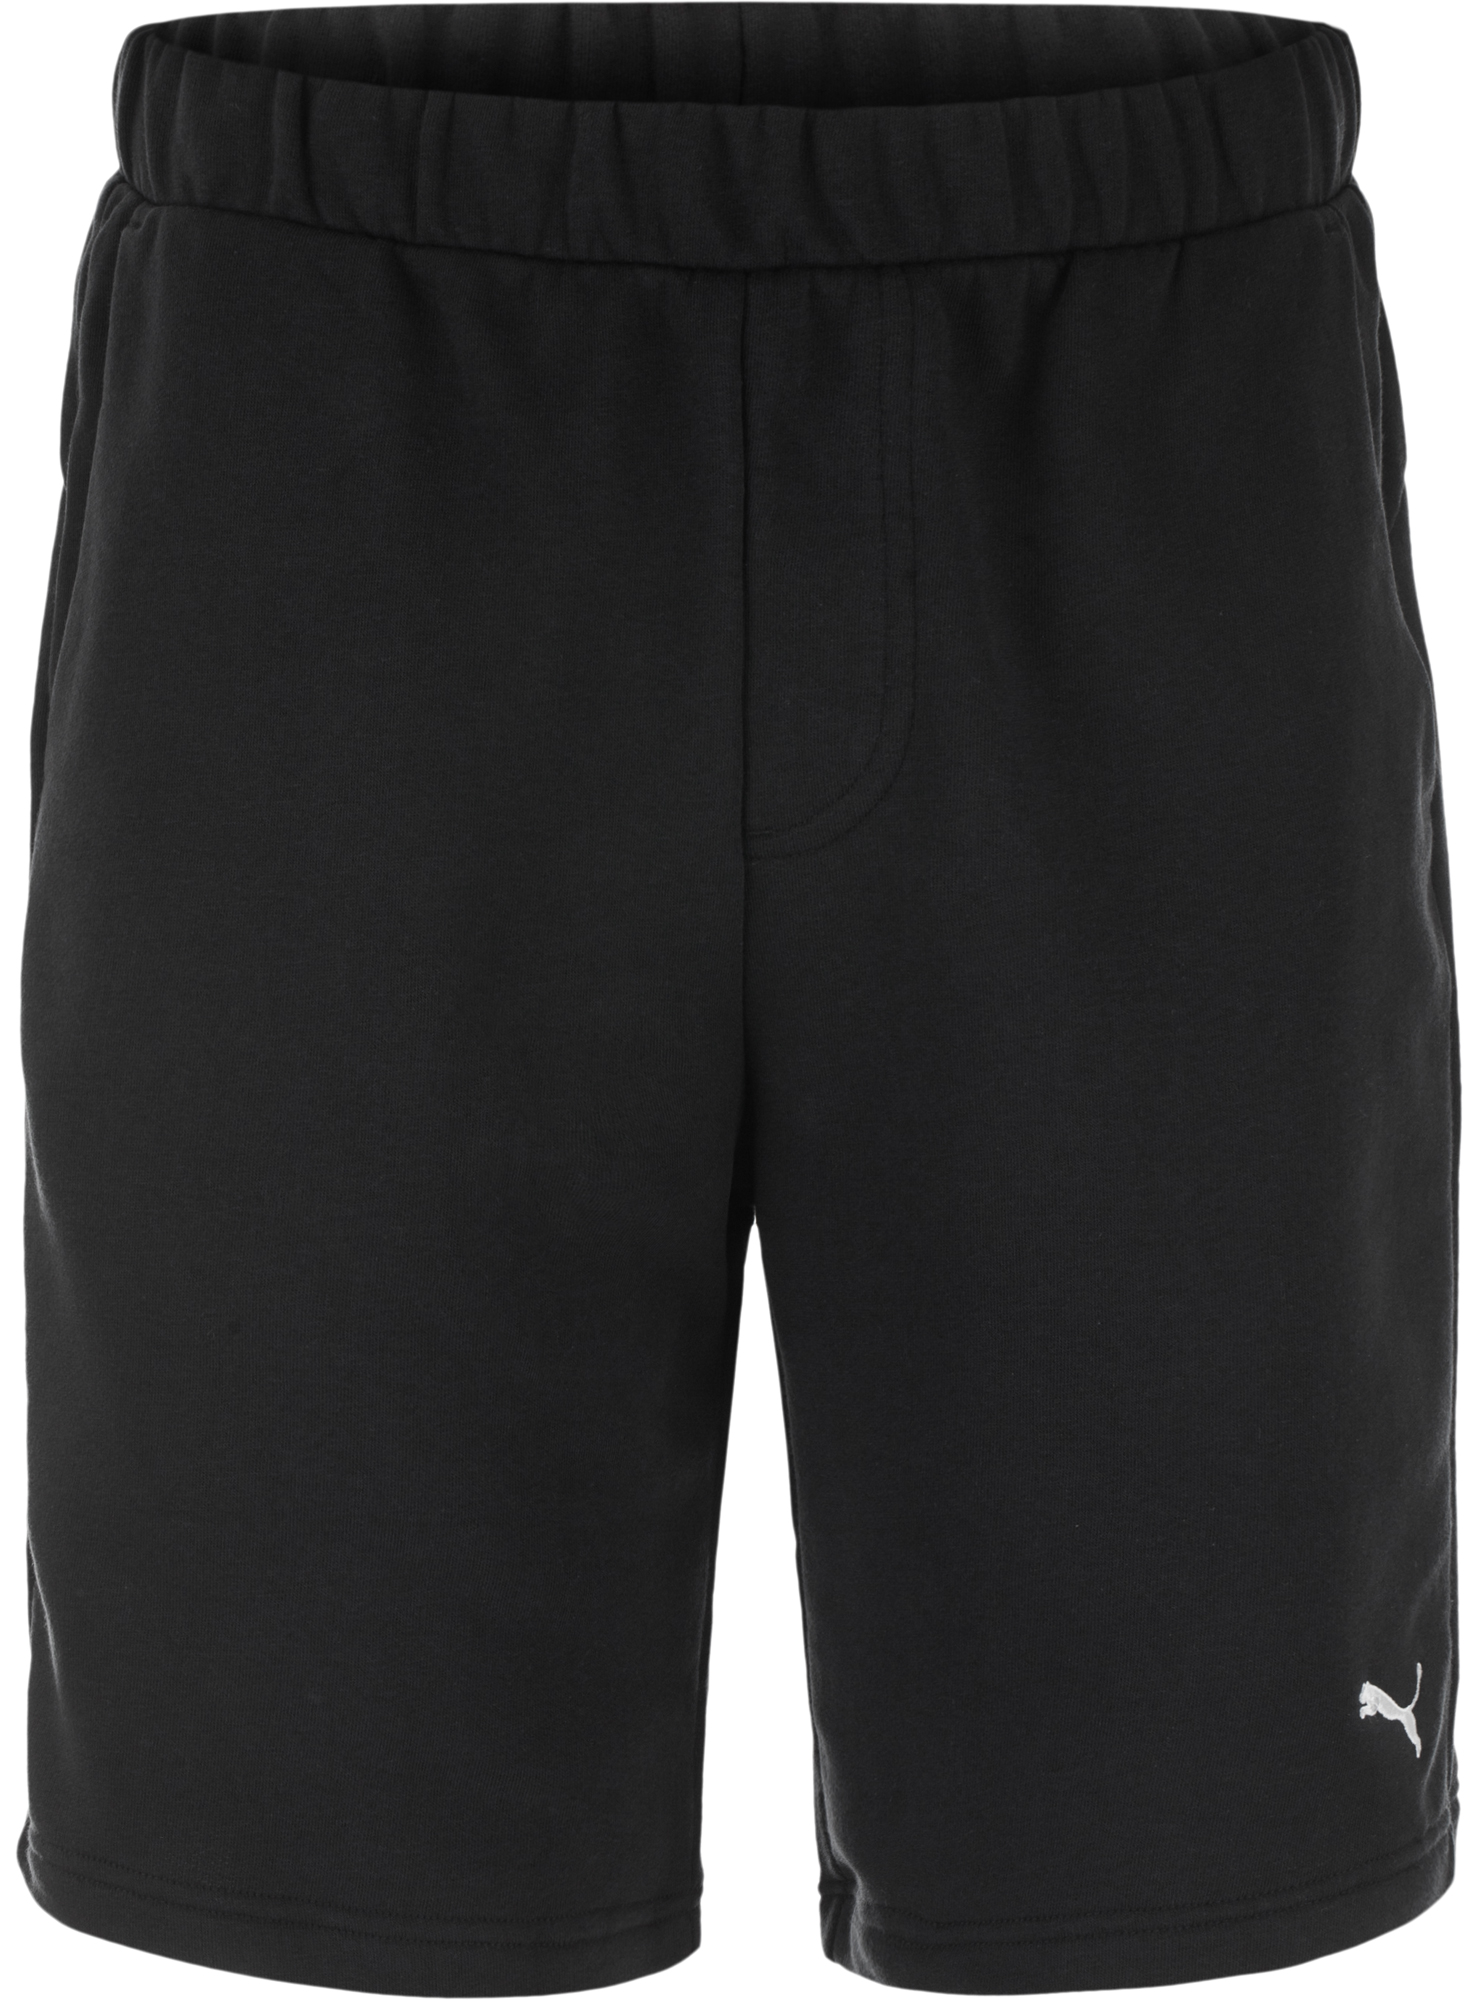 Puma Шорты мужские Puma Ess Sweat Shorts 9